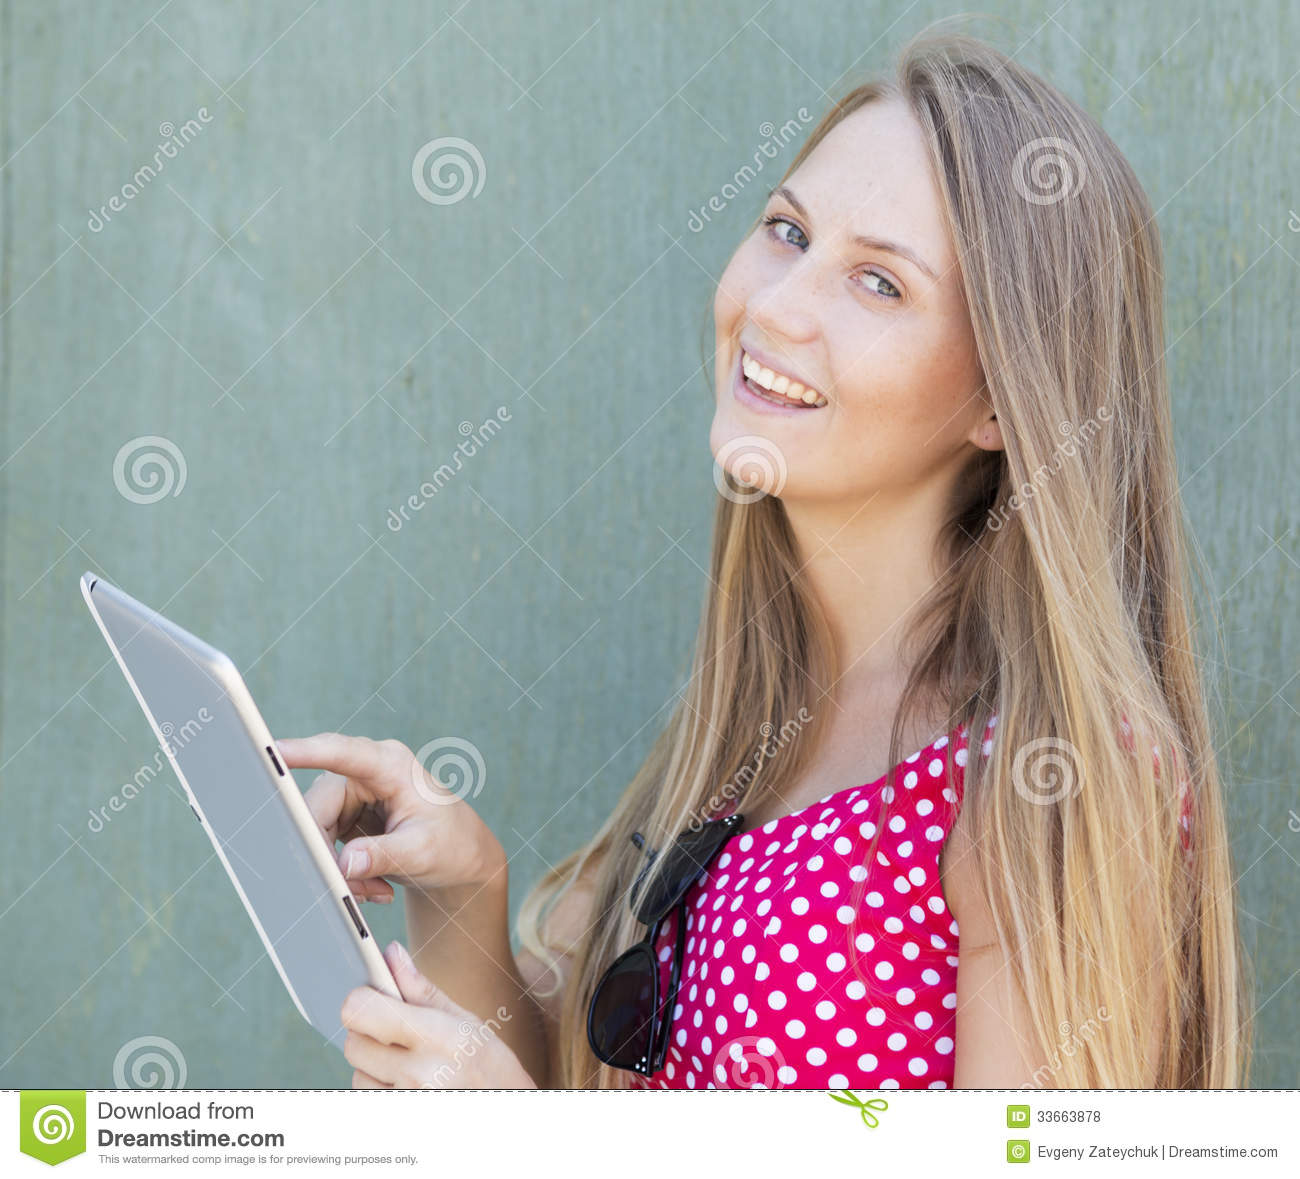 20 Years Old Girl Touching The Tablet Computer And Smiling